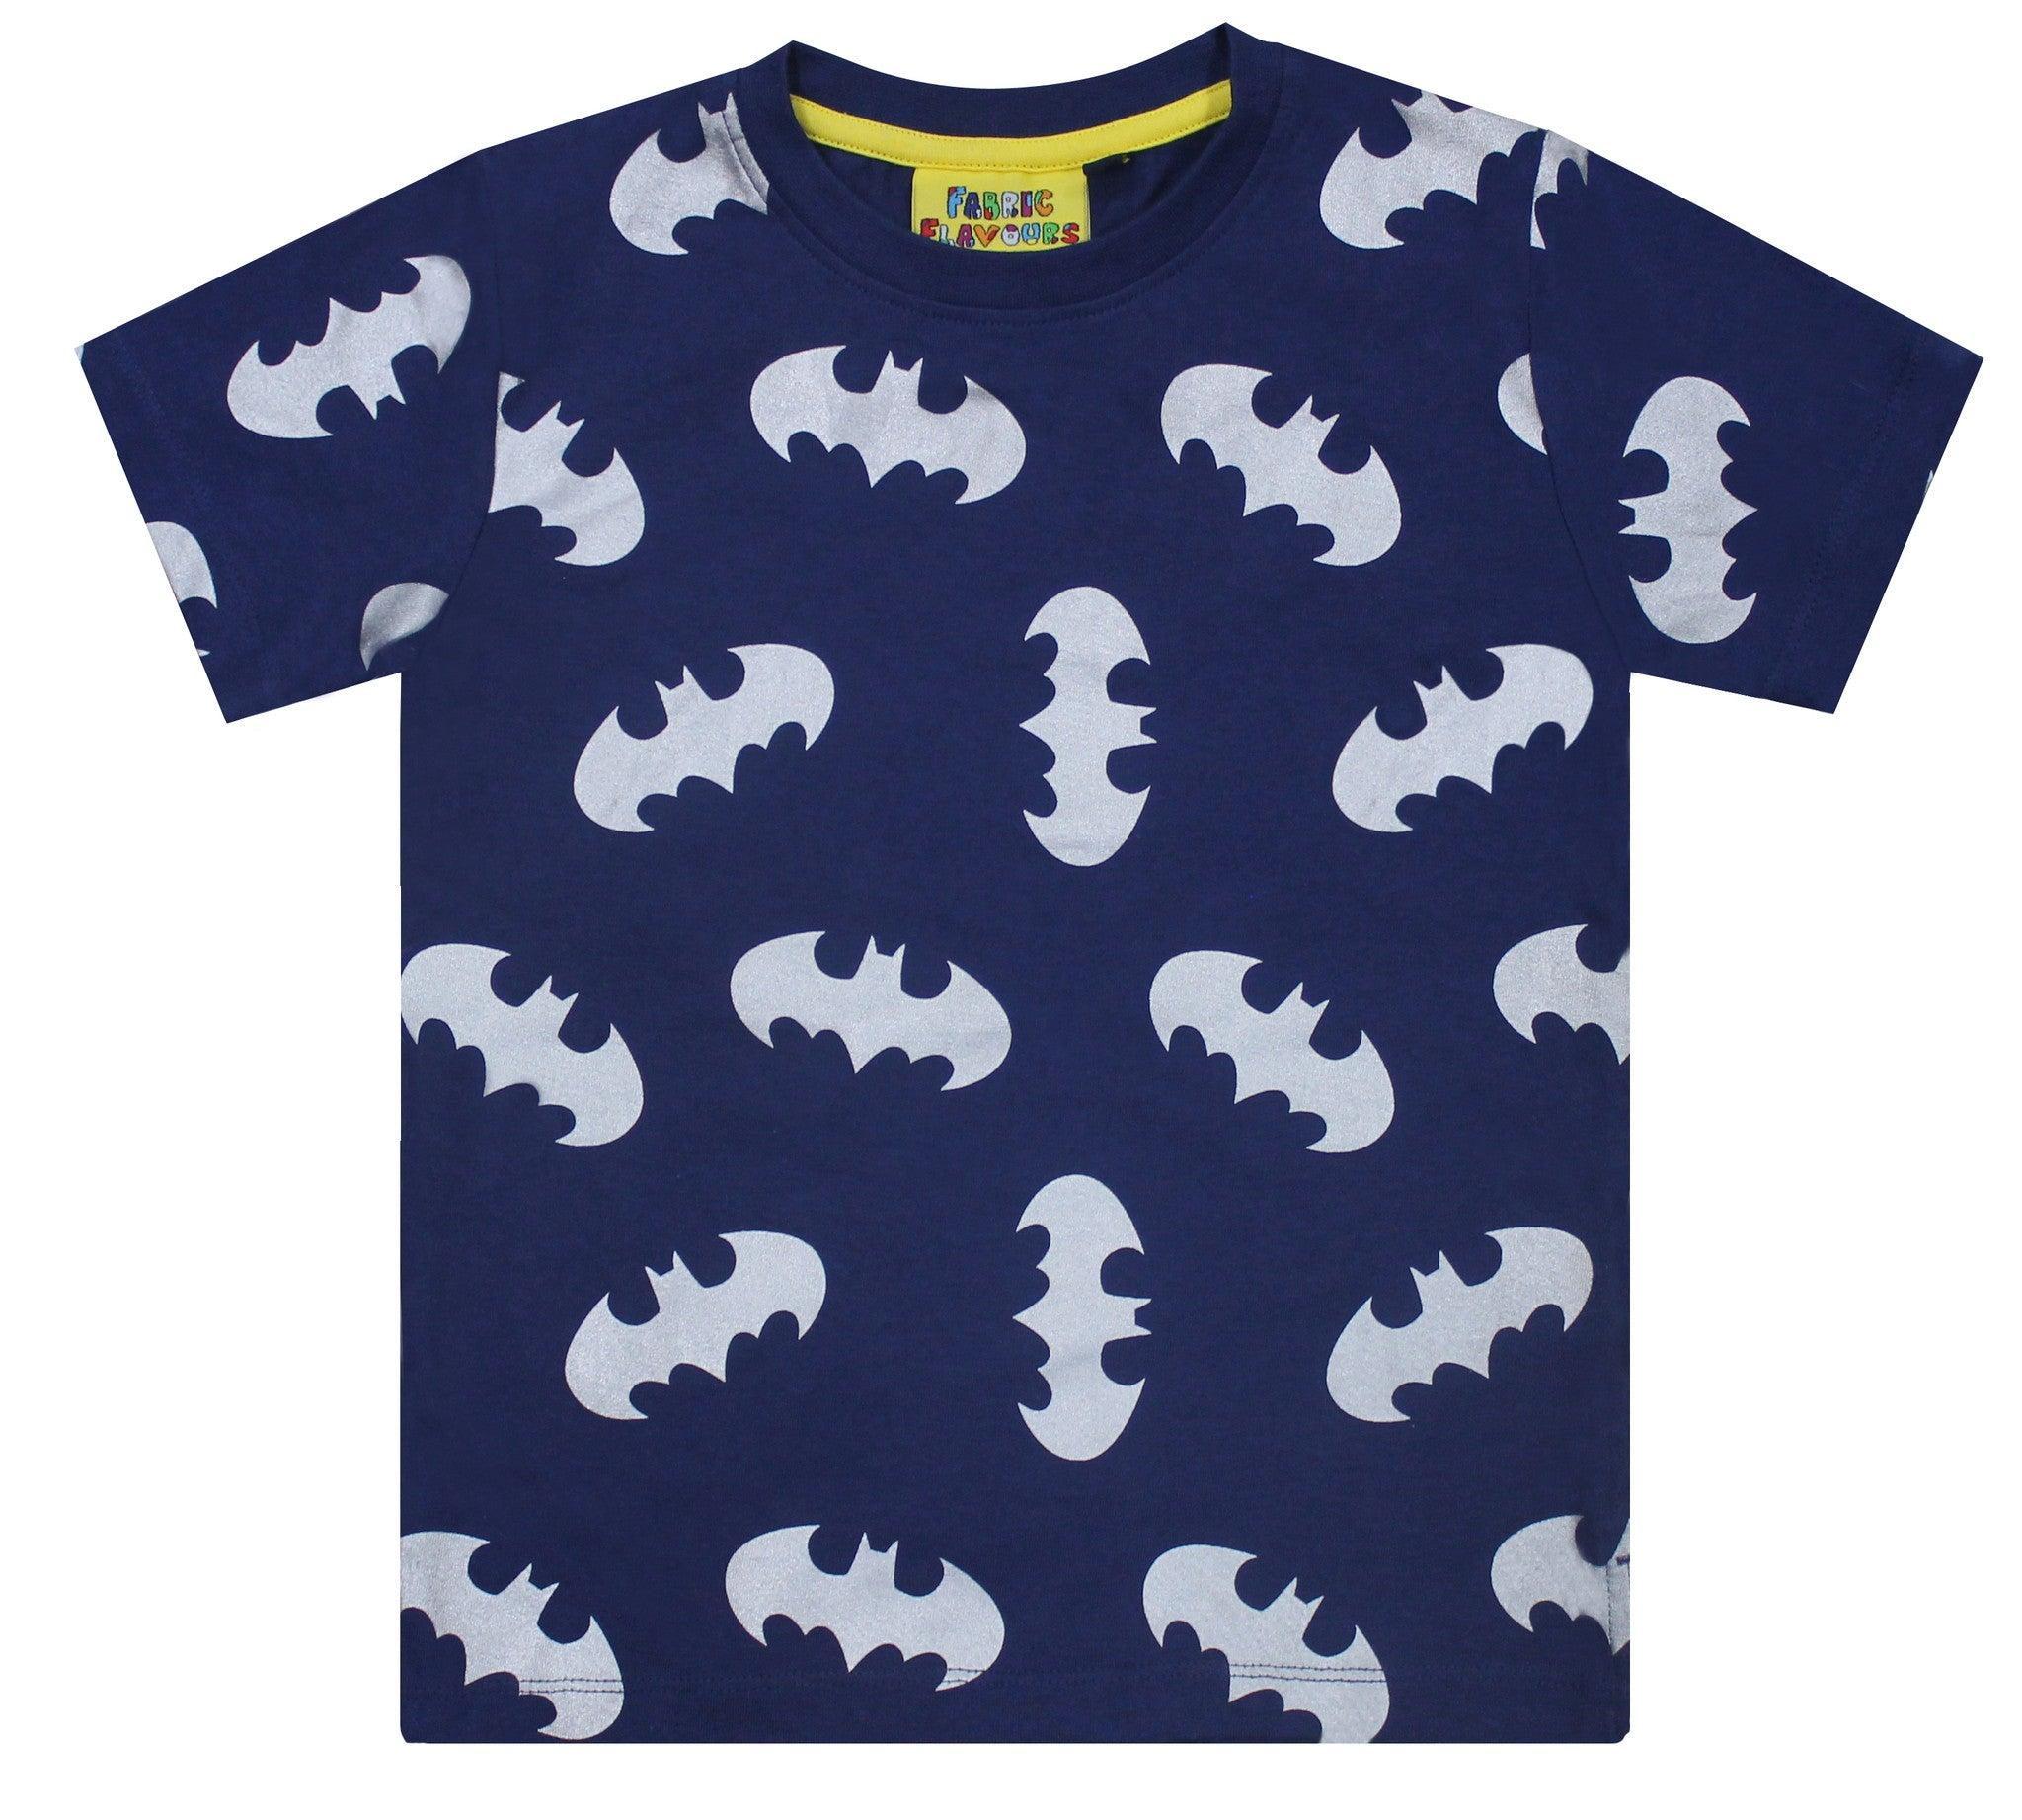 fea4b2fafc5 Batman Metallic Repeat Print T-Shirt | Little Giant Edit: Stylish,  affordable luxury kids clothing – littlegiantedit